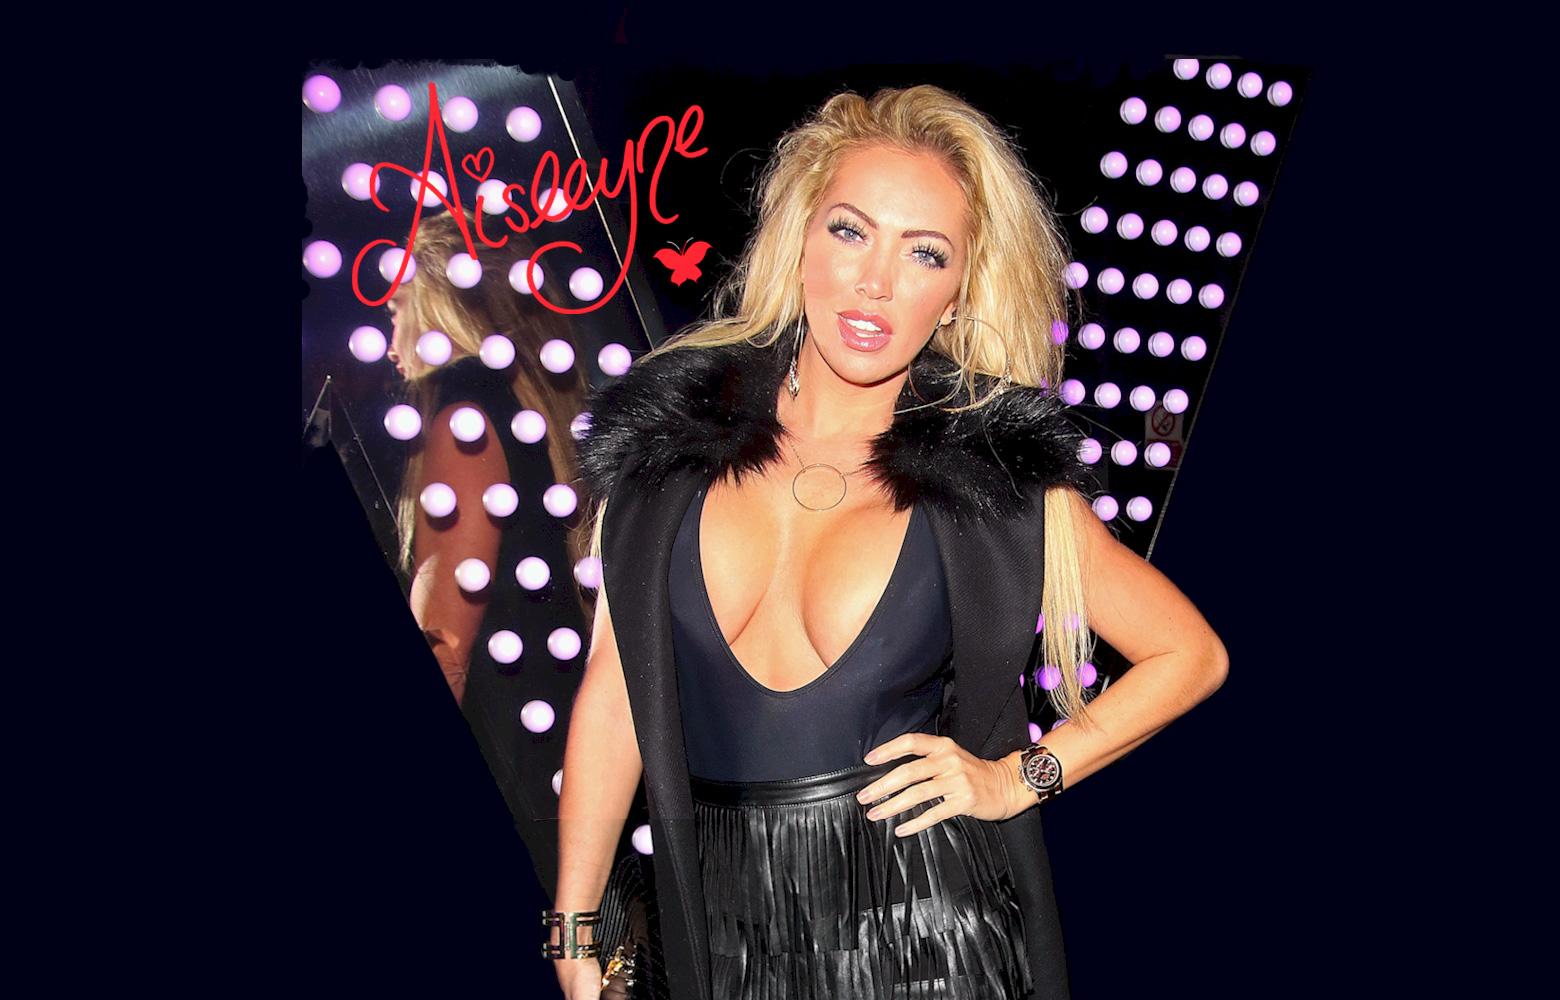 Aisleyne Horgan-Wallace net worth